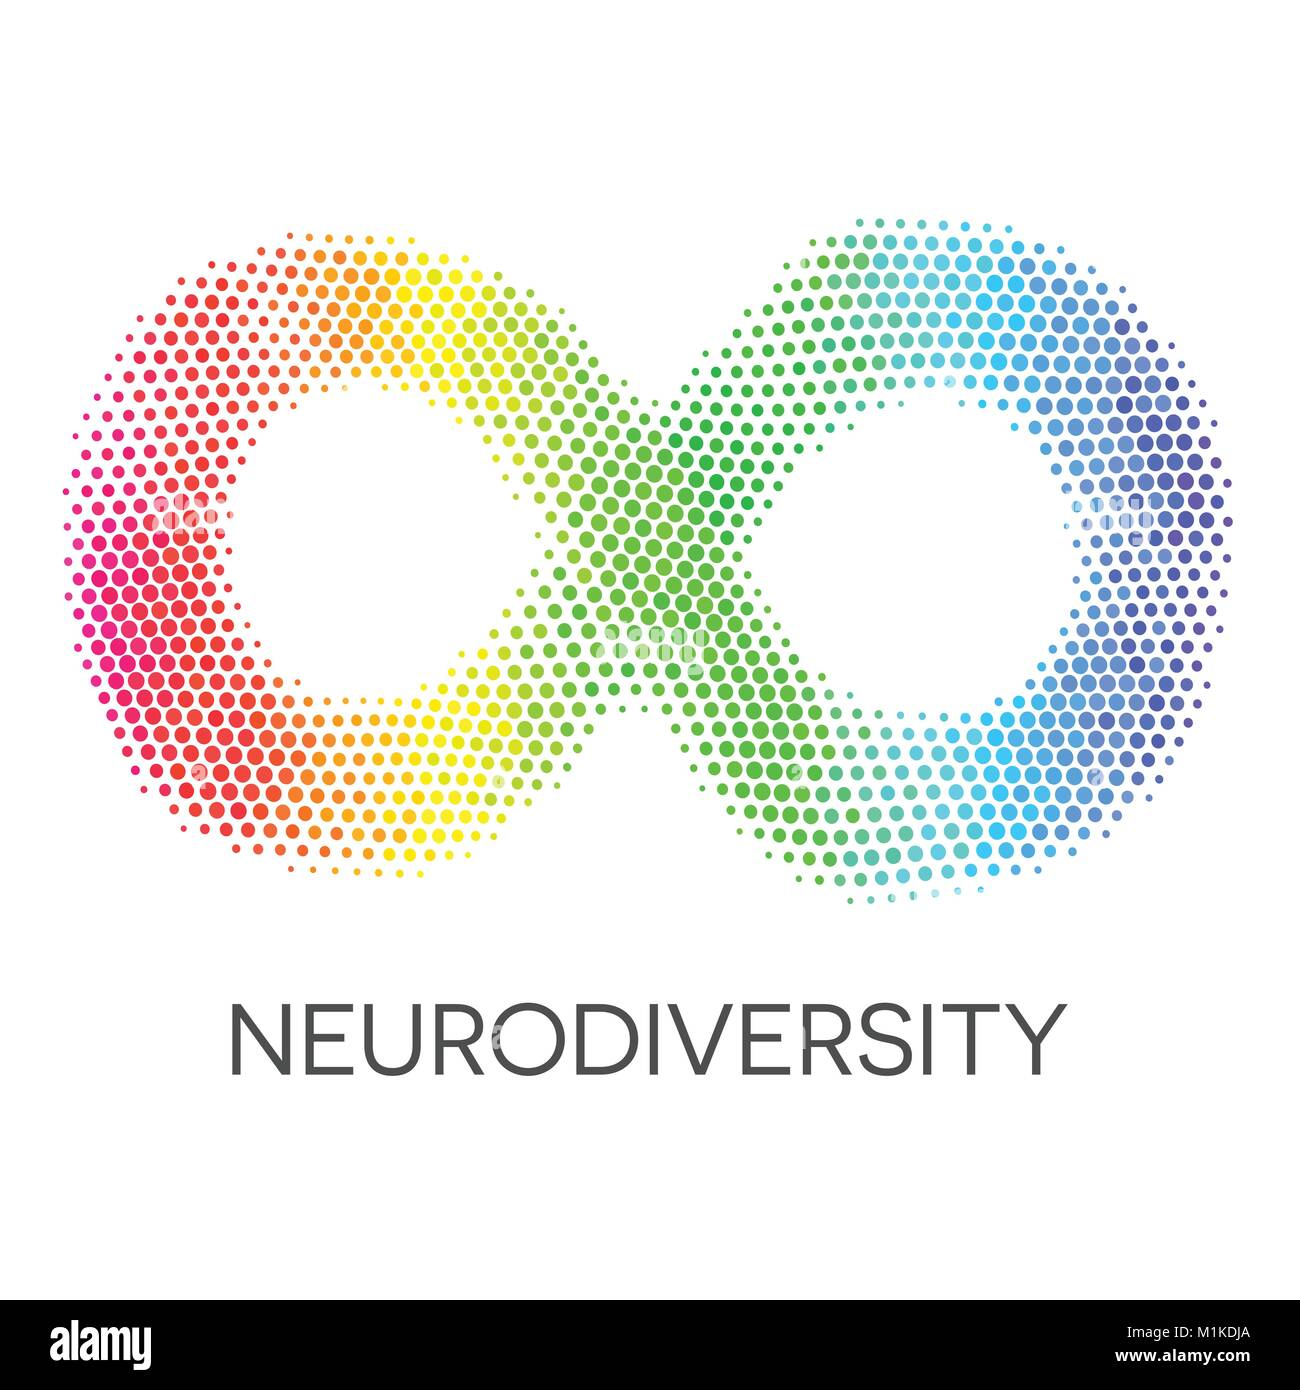 Rainbow Infinity Sign Colorful Symbol Of Neurodiversity Stock